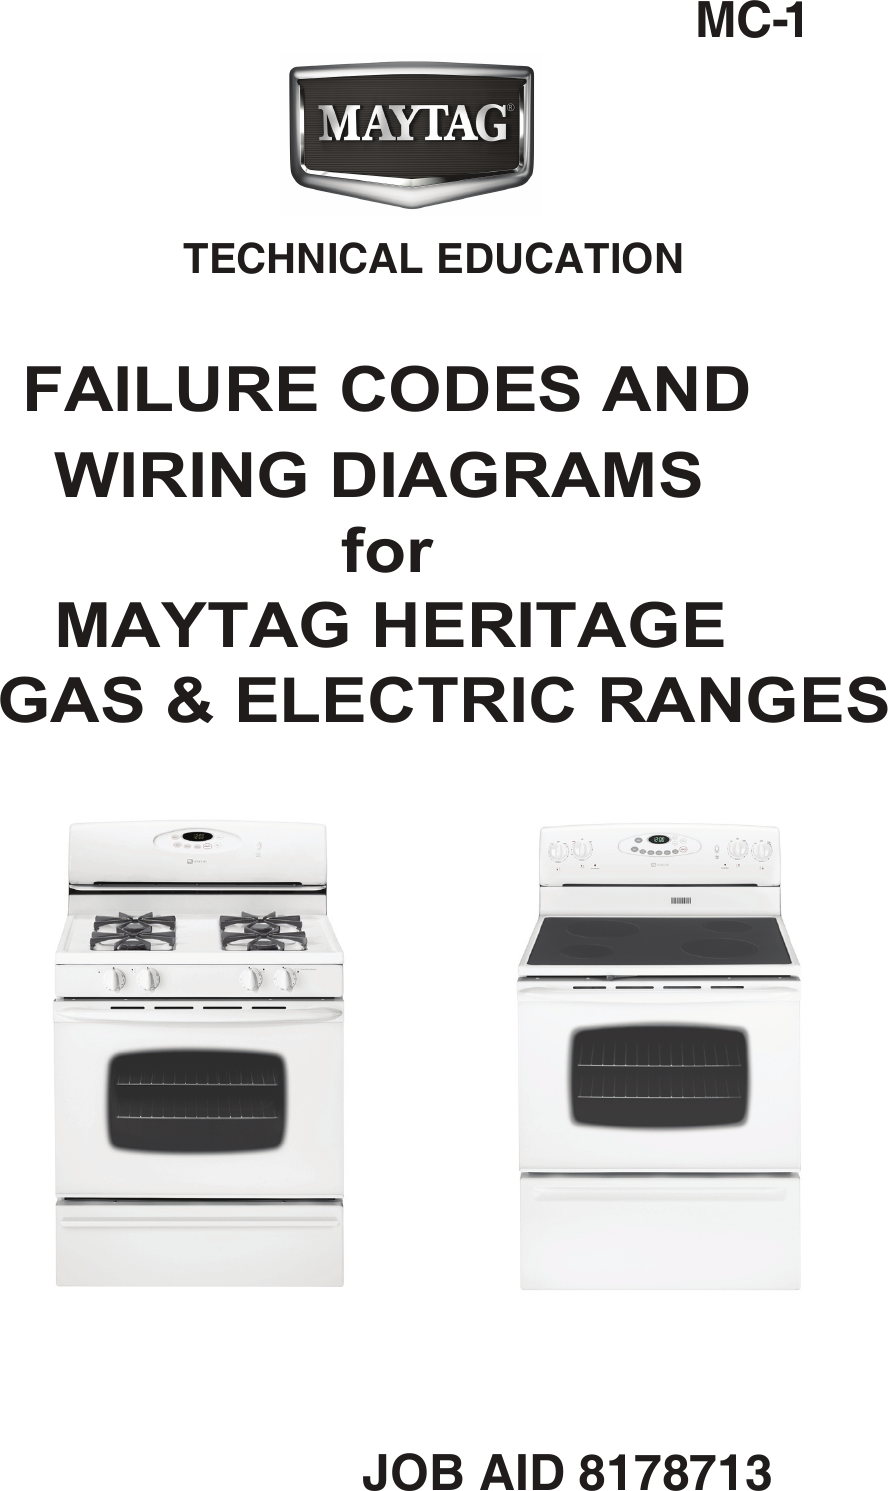 Maytag Range Codes Heritage Series 8178713 Oven Wiring Schematics Technical Educationjob Aid 8178713mc 1 Diagrams For Heritagegas Amp Electric Rangesfailure